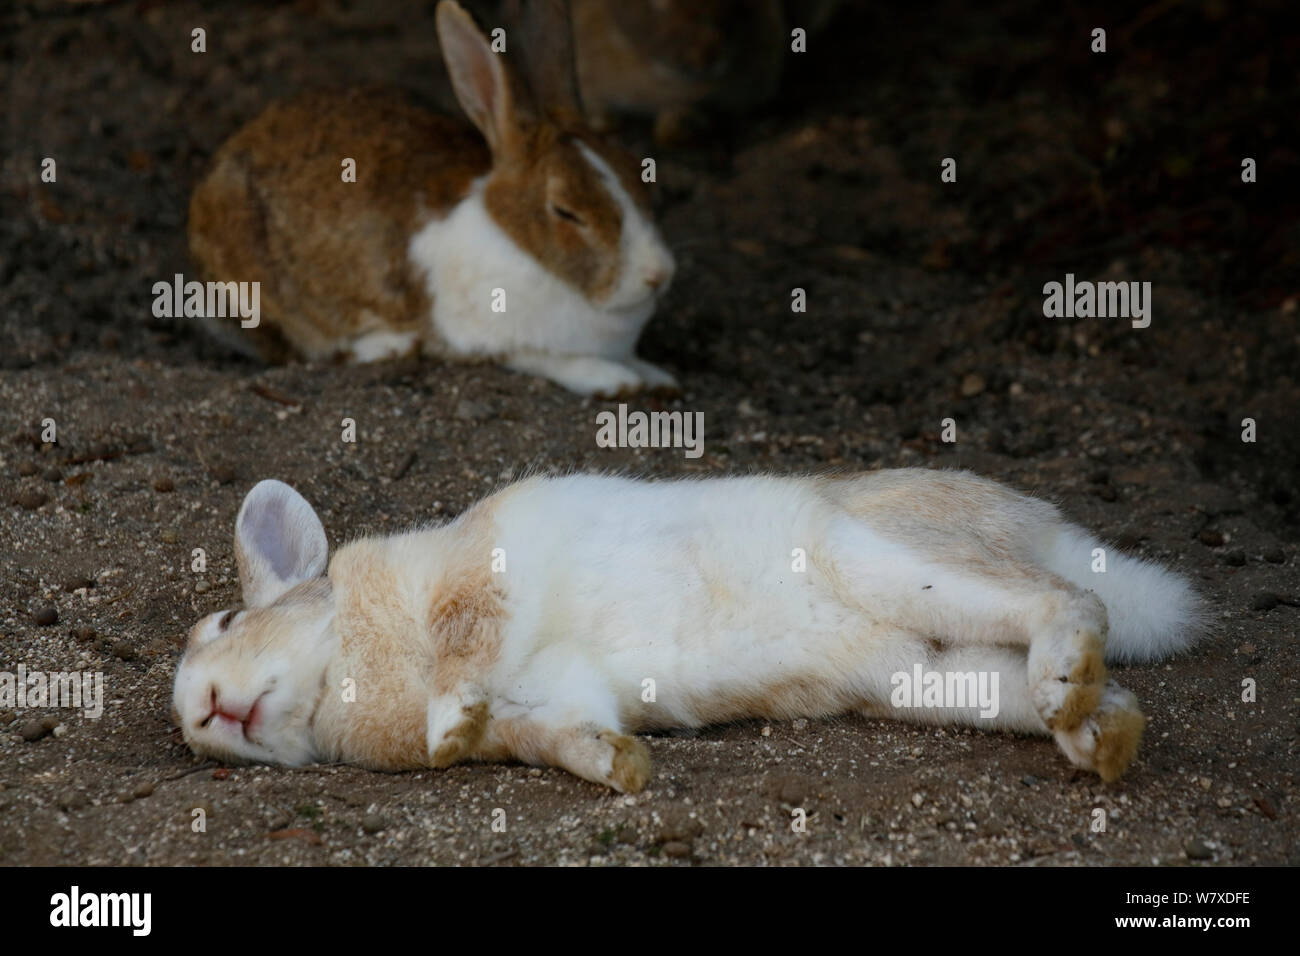 Feral domestic rabbit Oryctolagus cuniculus lying on its side ...